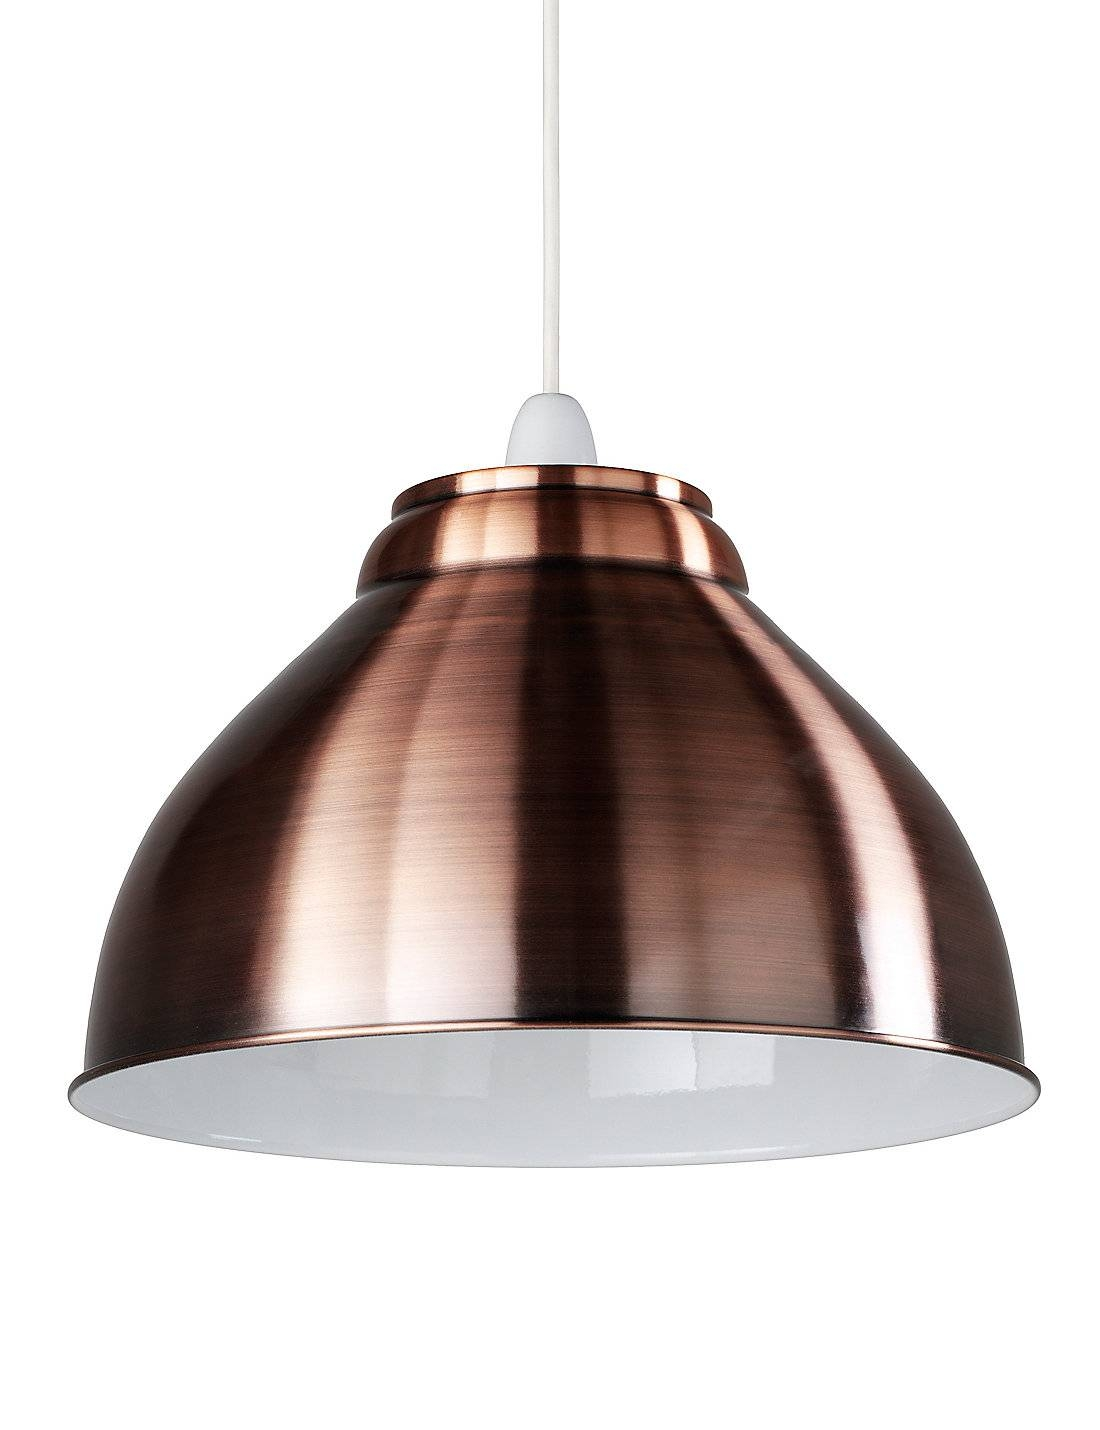 15 the best john lewis ceiling lights shades adding beauty and decor to your house with the gold ceiling light throughout john lewis ceiling aloadofball Images